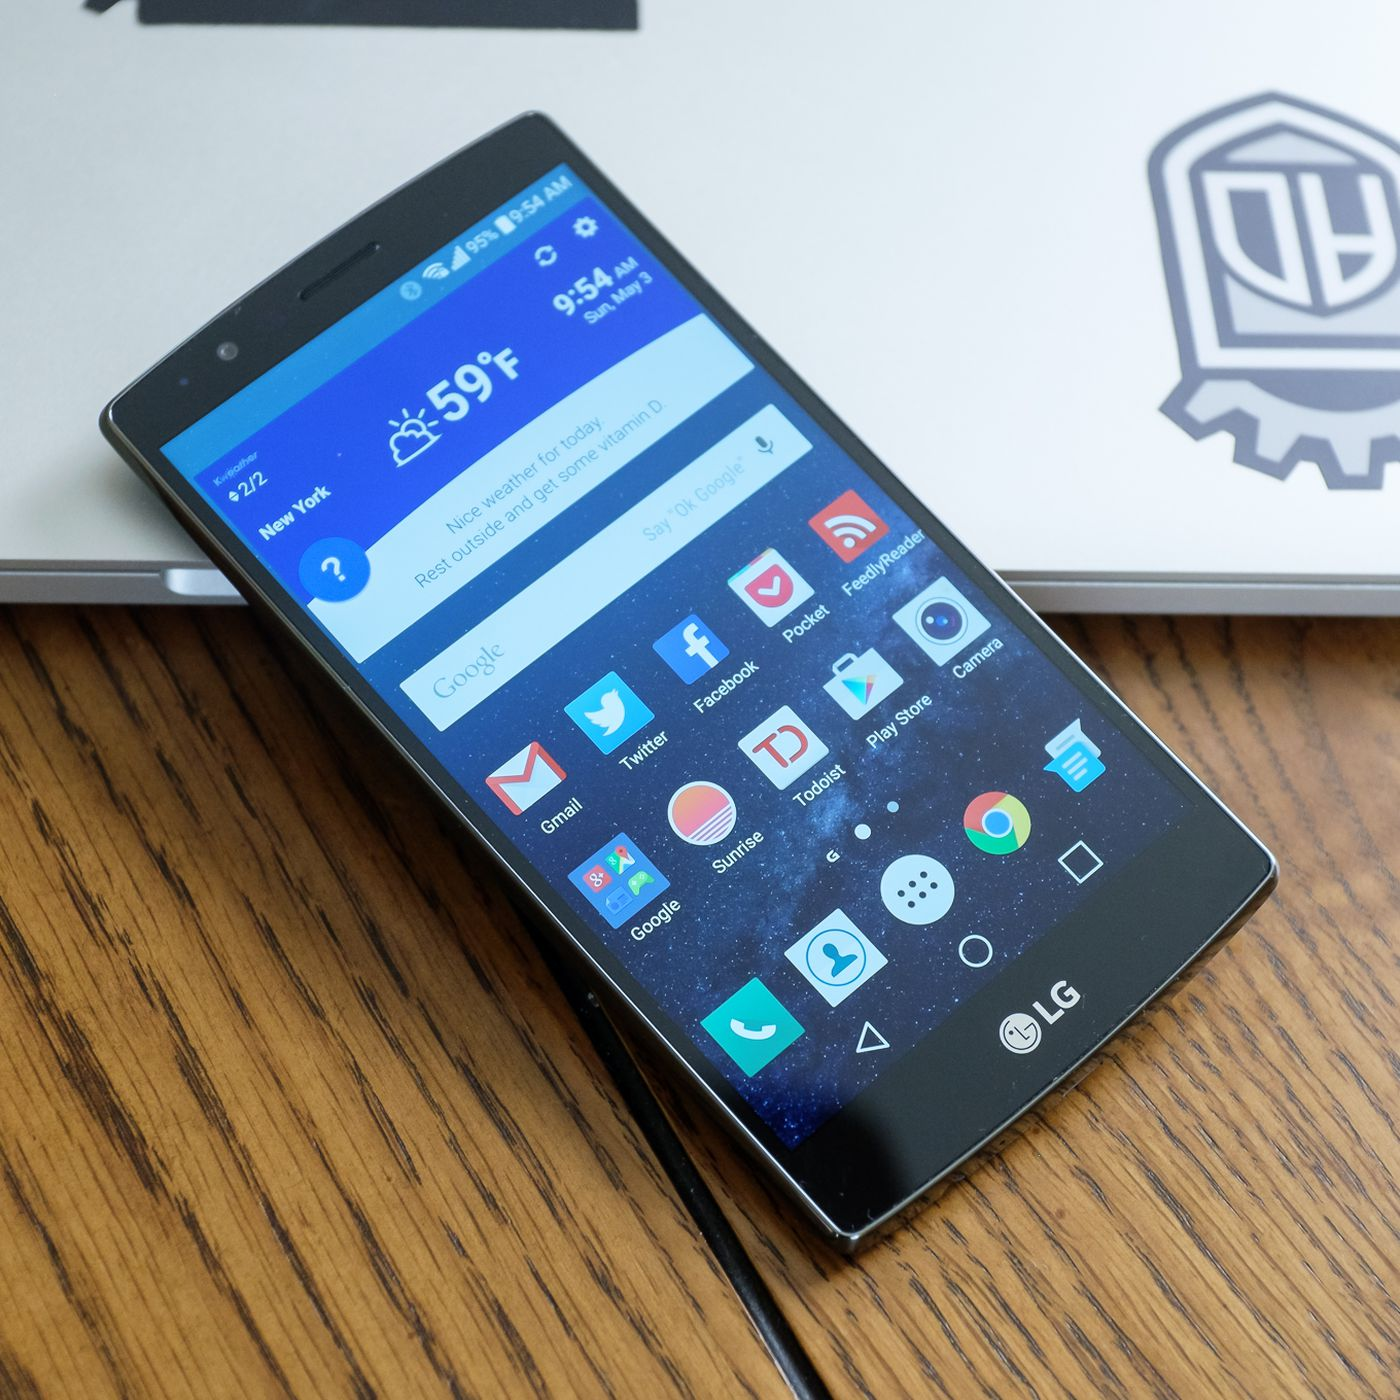 LG G4 review | The Verge